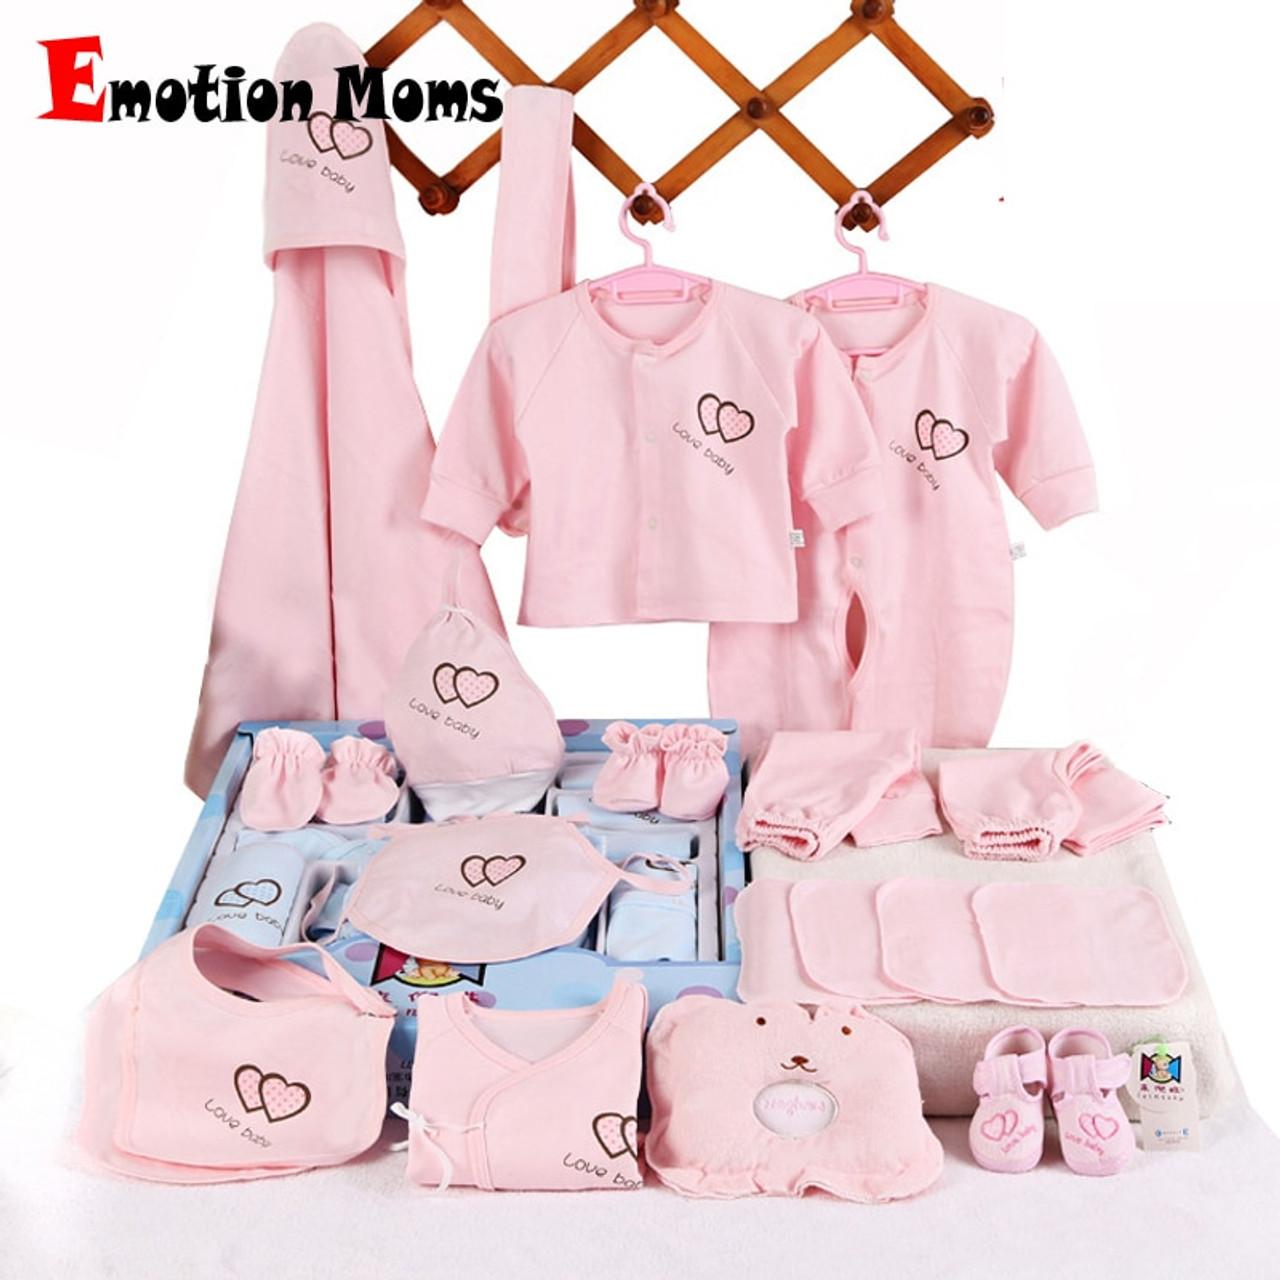 33b74782f3d1d Emotion Moms 22pieces Newborn baby girls Clothing 0-6months infants baby  clothes girl boys clothing ...